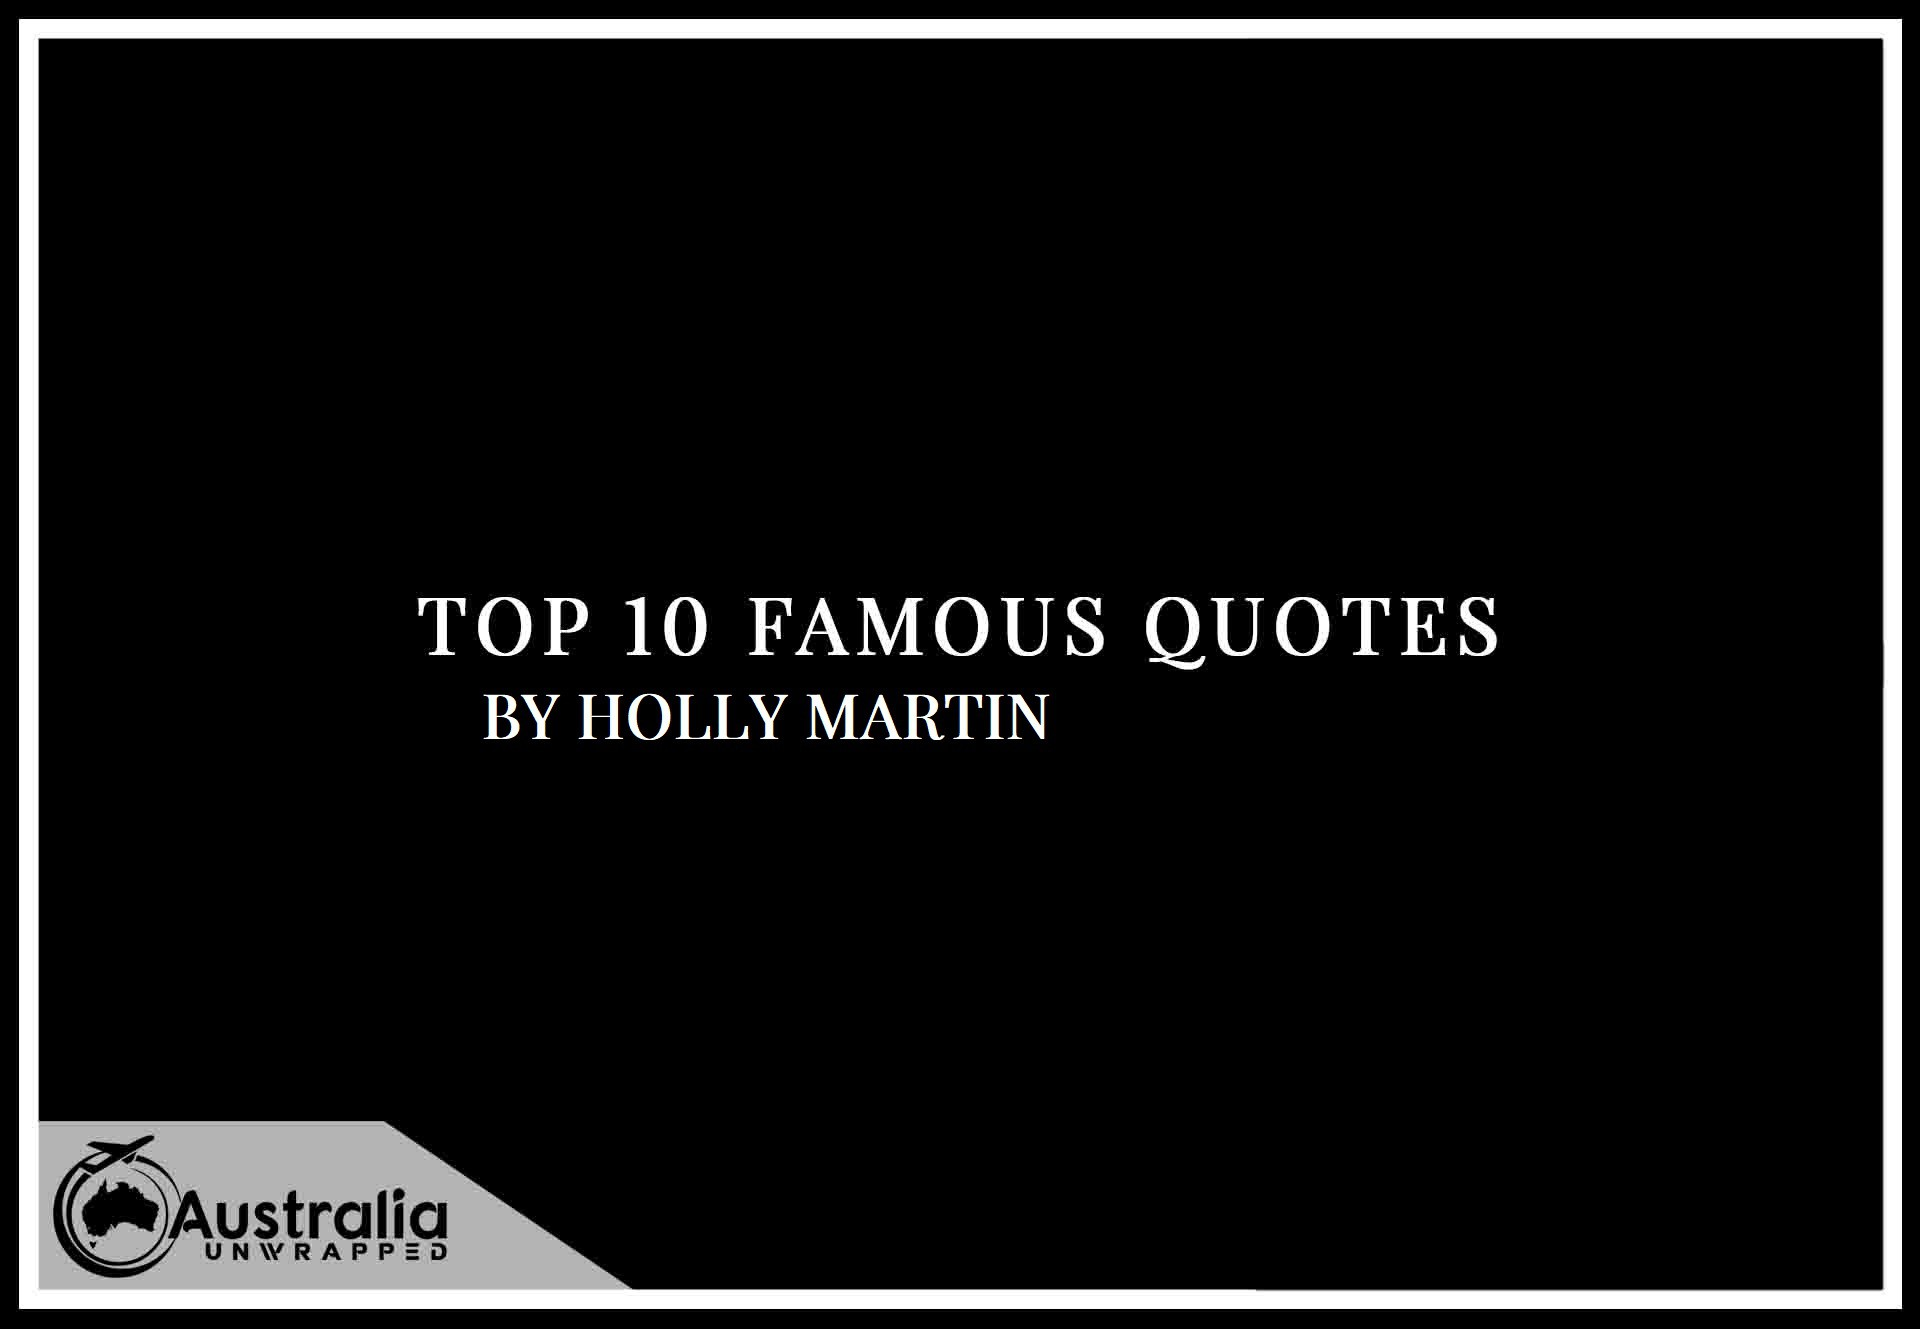 Top 10 Famous Quotes by Author Holly Martin